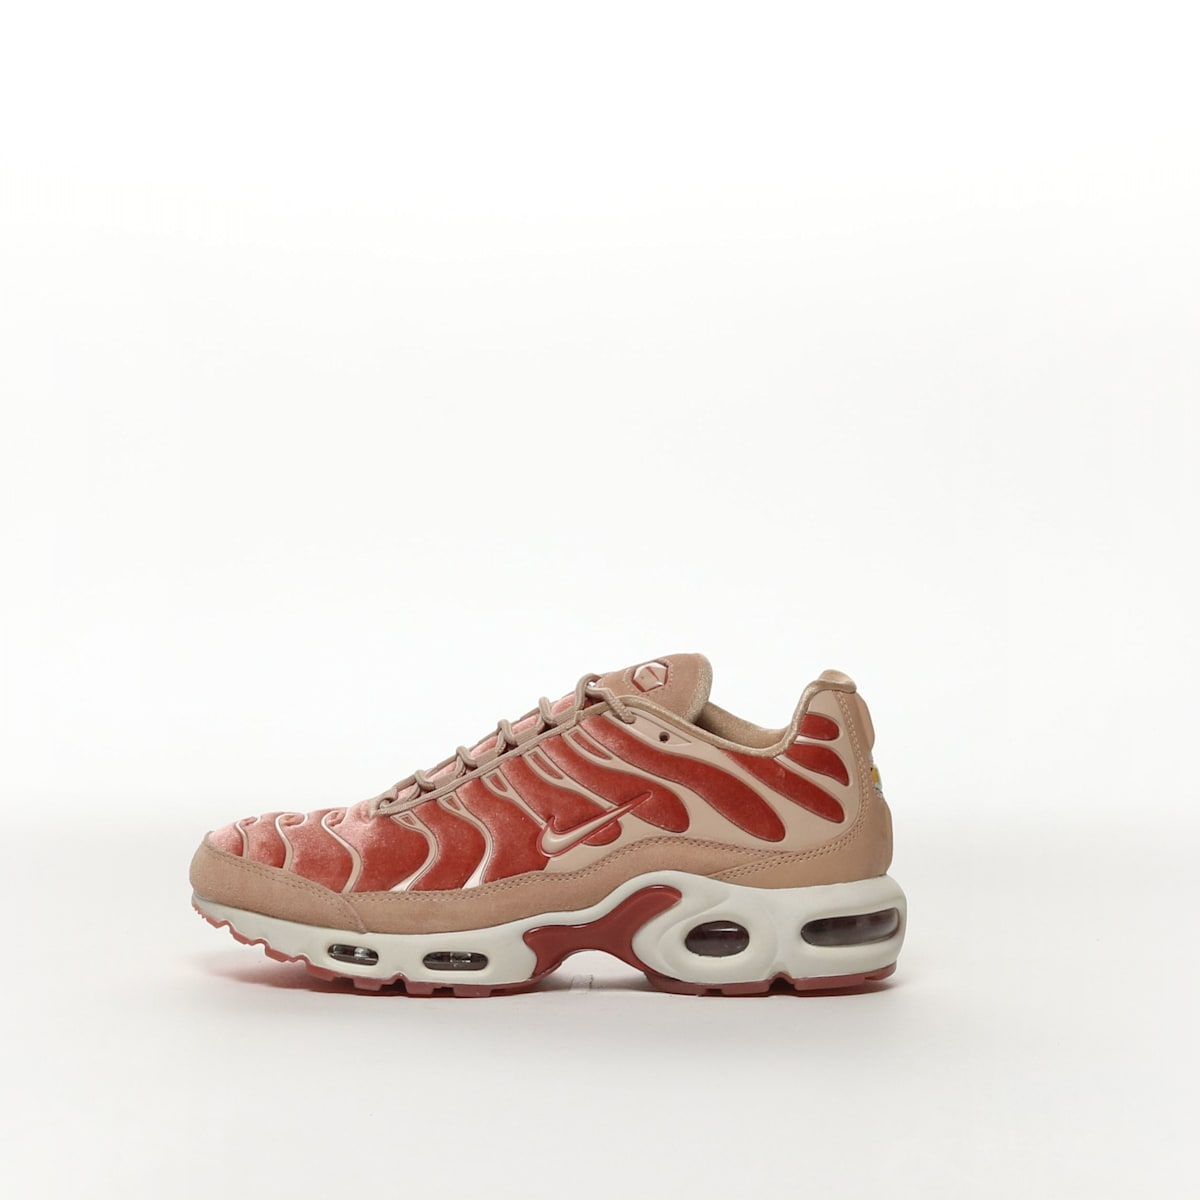 c2eb6bd669304 Nike Air Max Plus LX - DUSTY PEACH SUMMIT WHITE DUSTY PEACH BIO ...